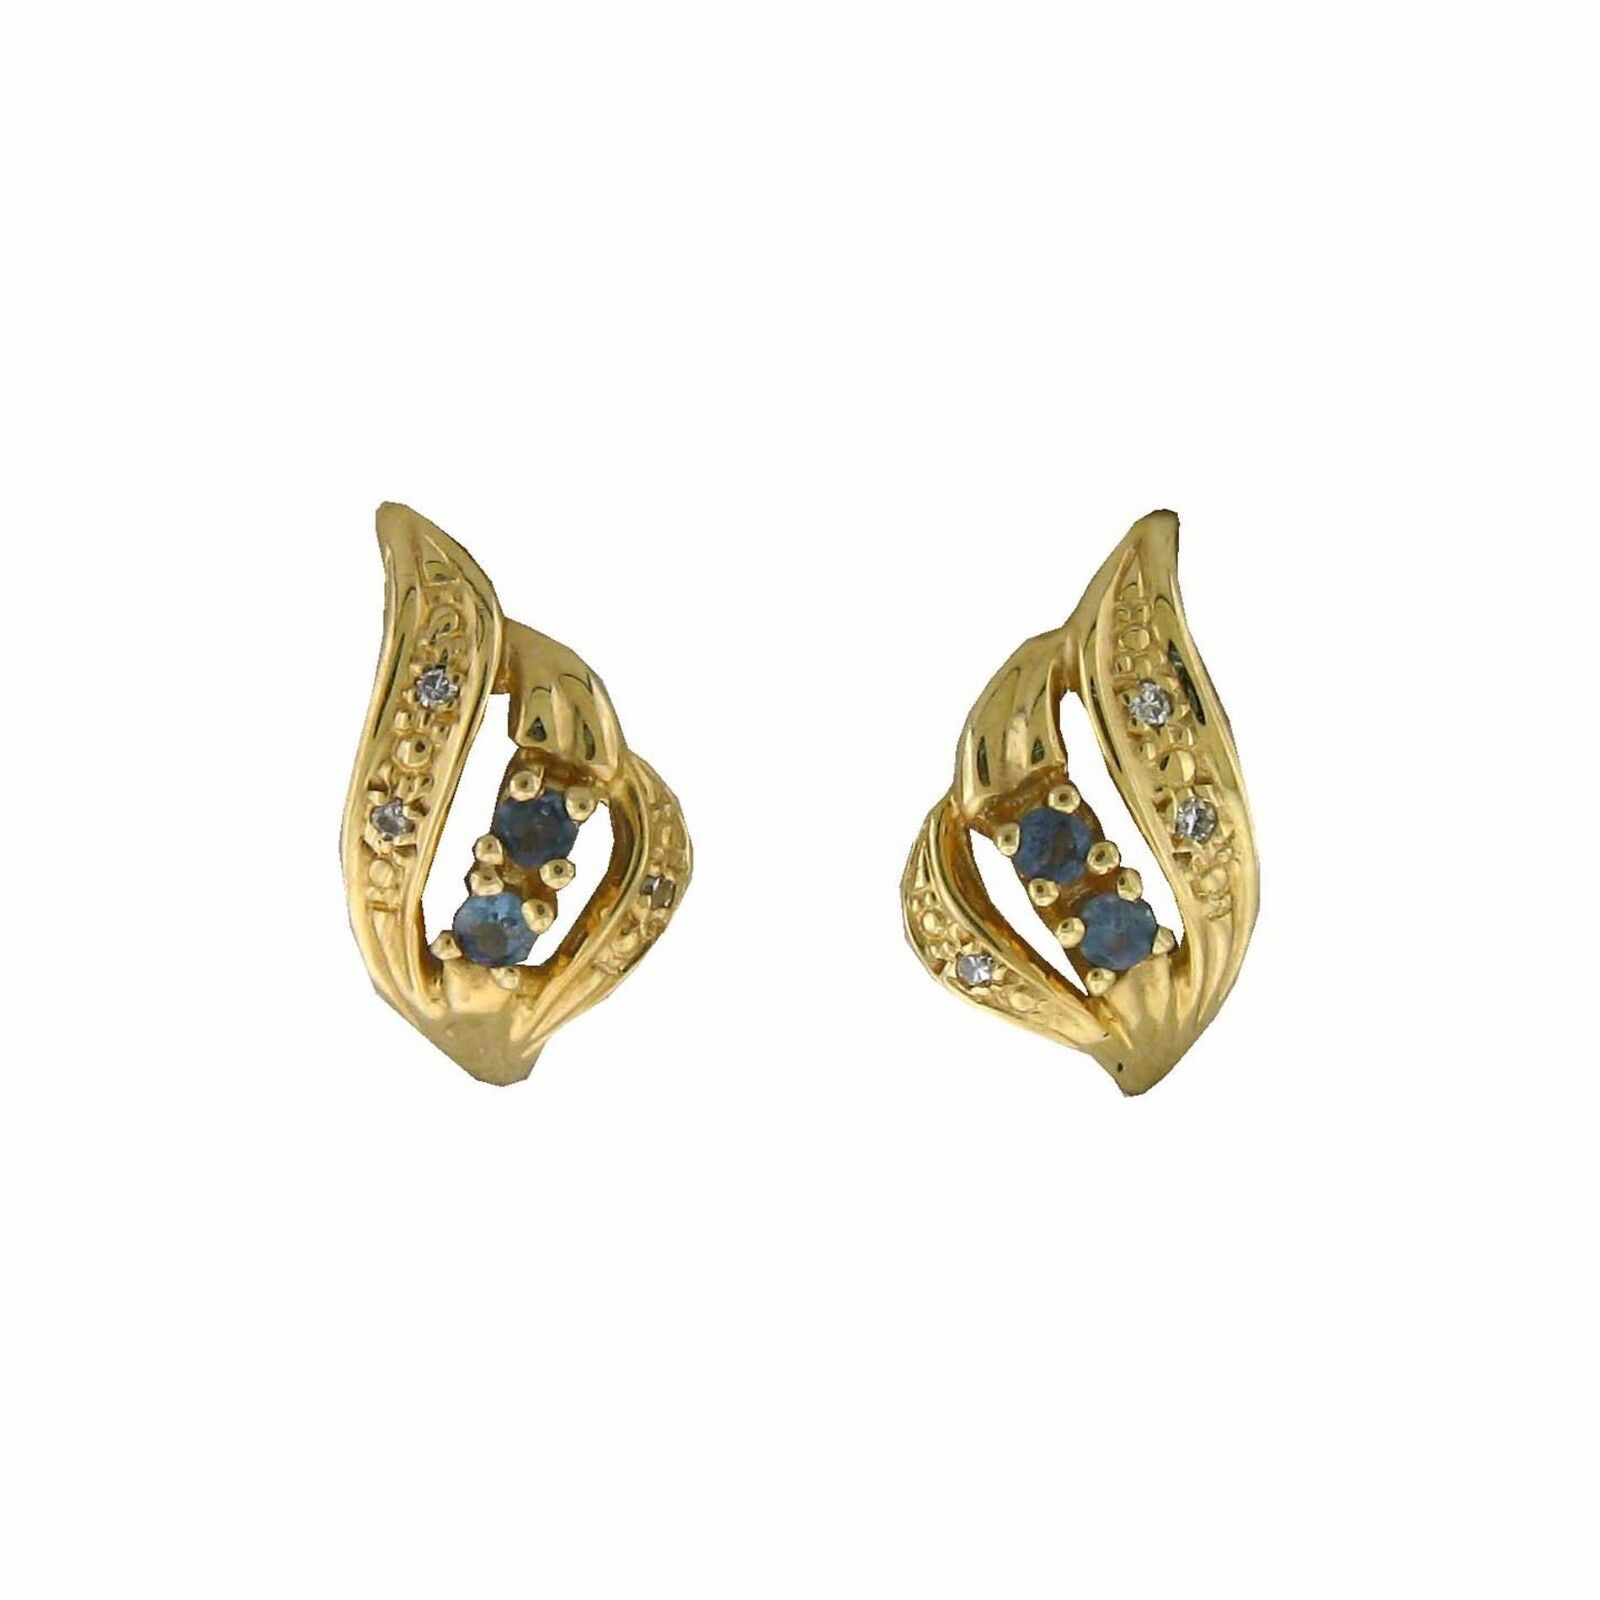 NATURAL Alexandrite color Change Diamond Earring in 14K YG  with Certificate